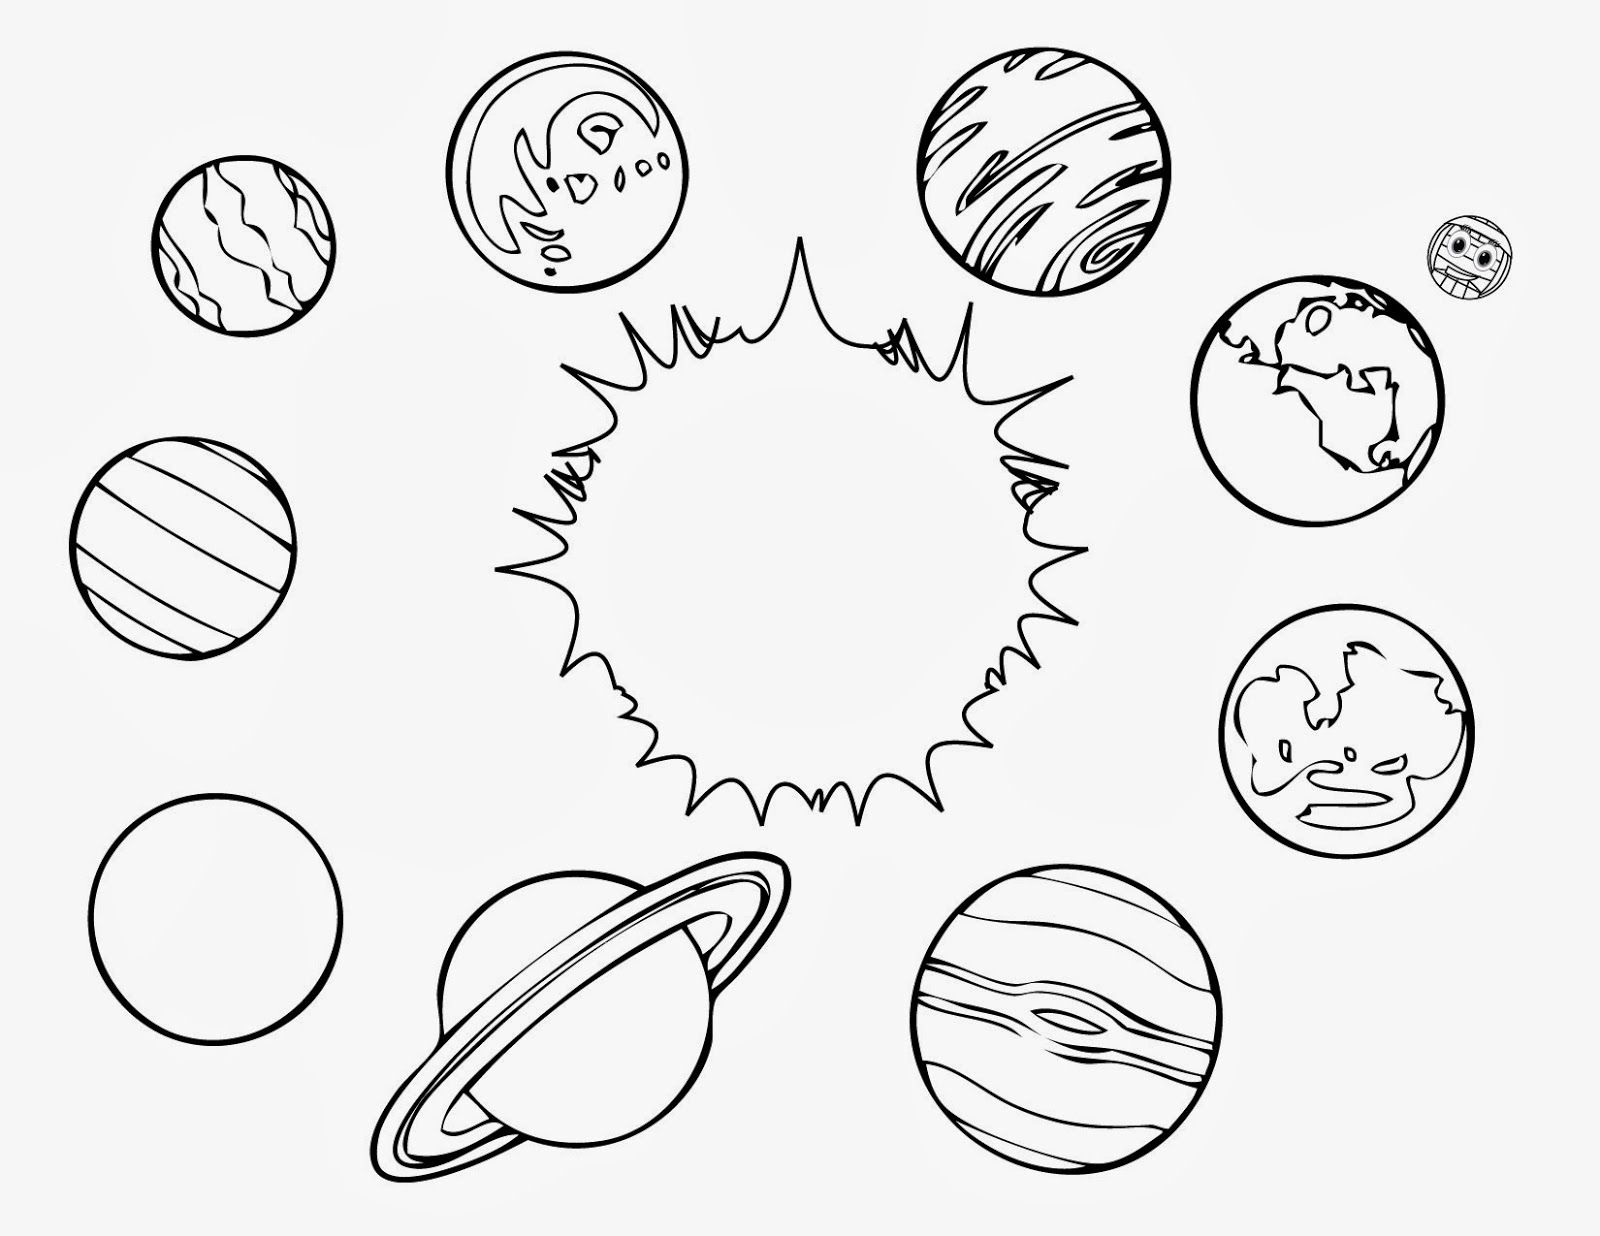 planets coloring pages for kids printable - Planets Coloring Pages Printables